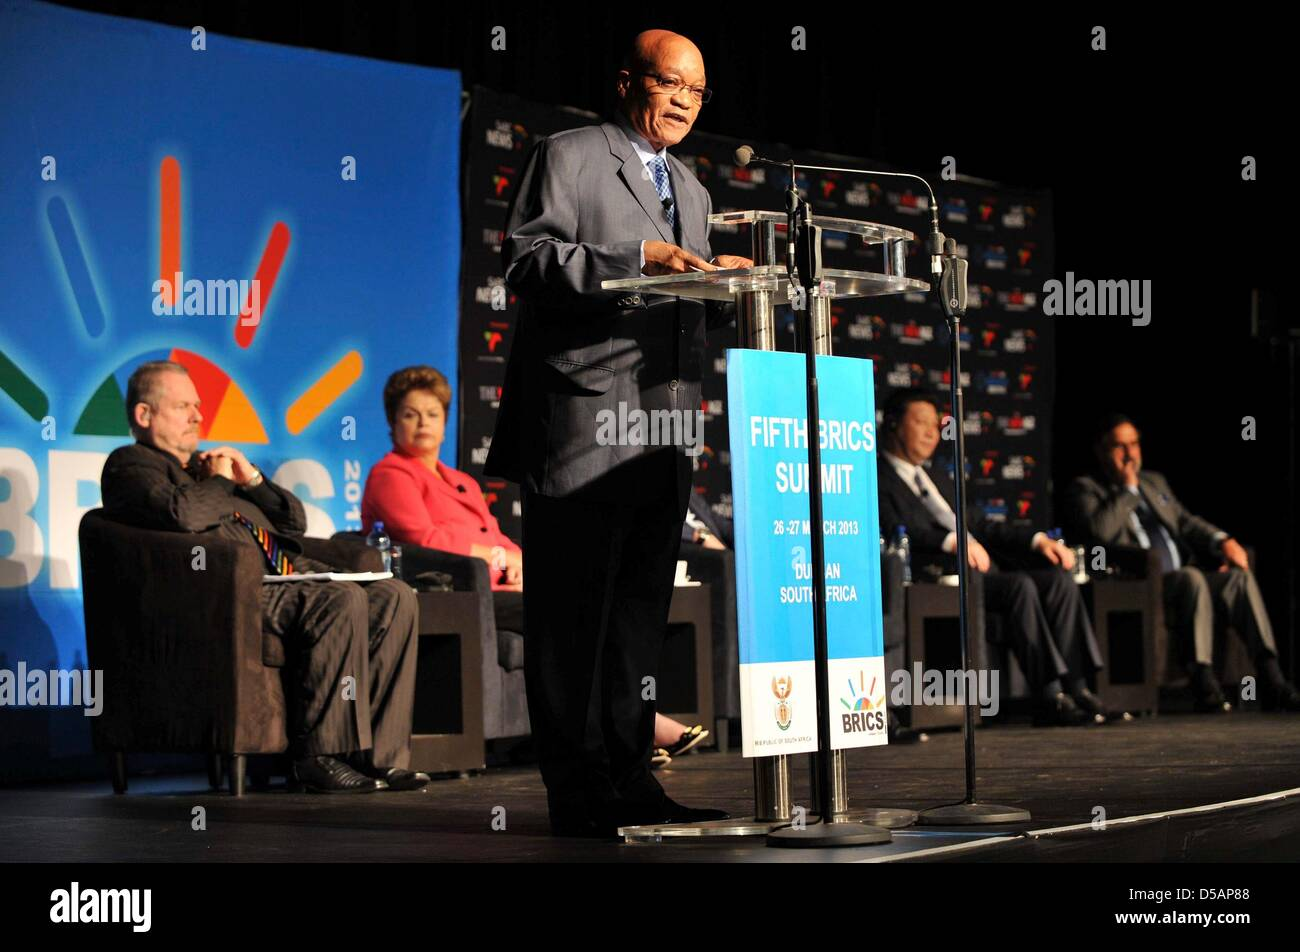 Durban, South Africa. 27th March 2013. President Jacob Zuma, President Dilma Rousseff, President Vladimir Puting - Stock Image